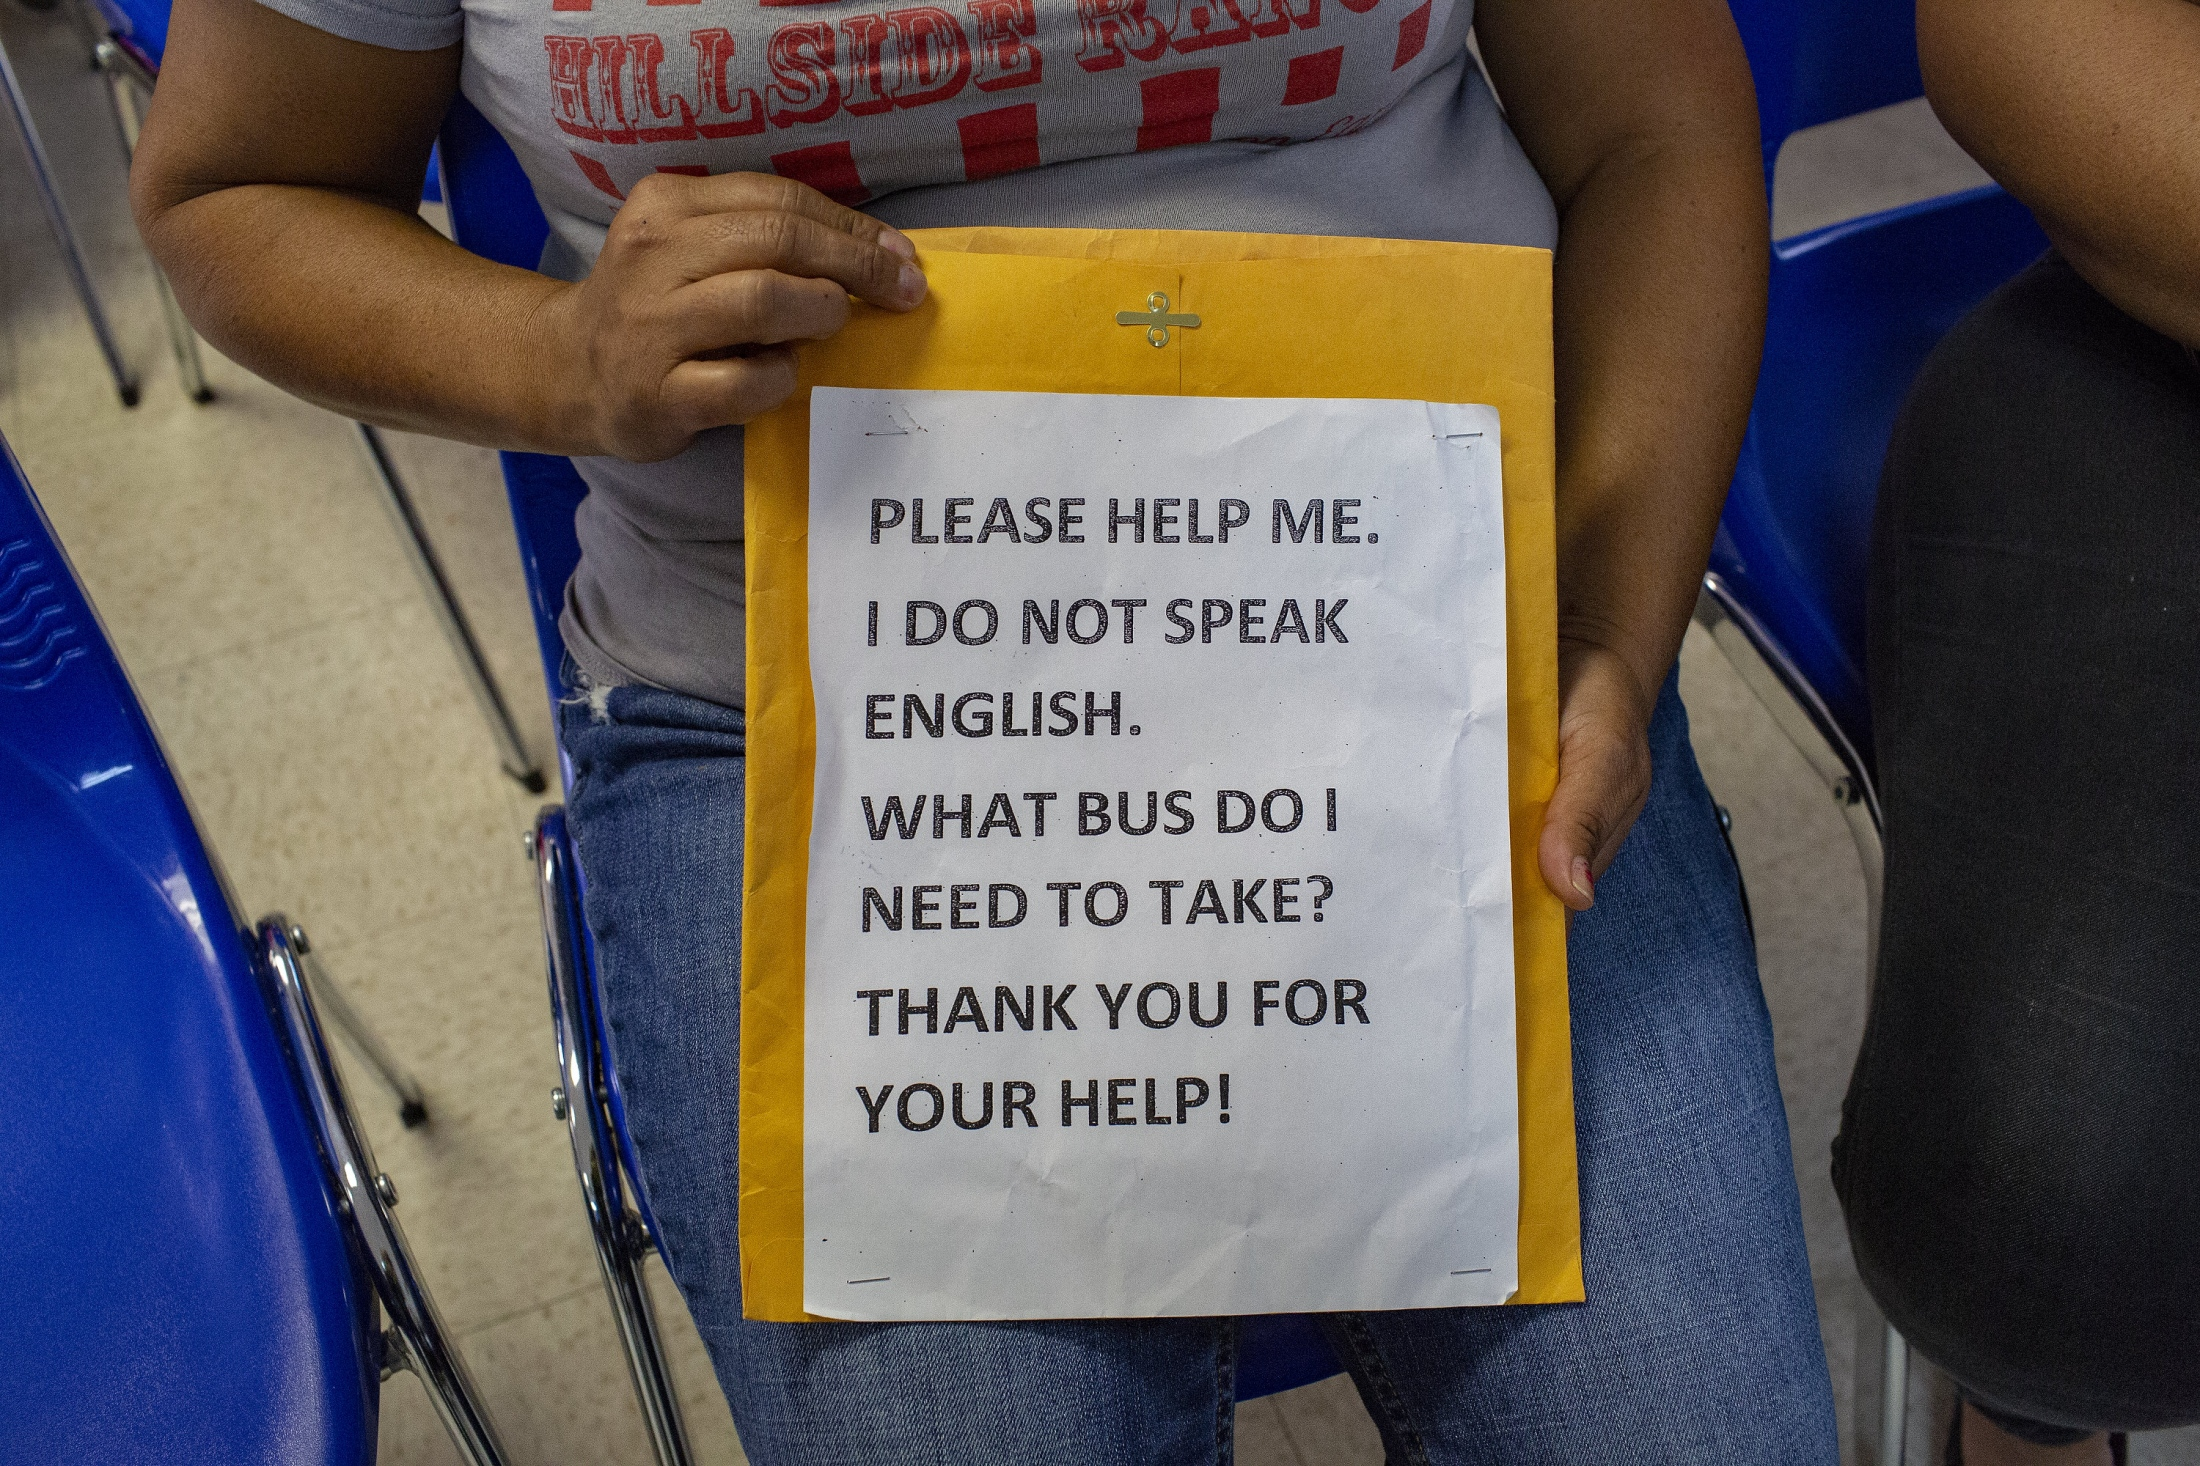 "I met a Central American migrant woman and her son from Catholic Charities in McAllen, Texas, who just got released from detention. The woman holds a sign that says "" Please help me I do not speak English."" This sign will help them as they travel across the U.S. to join other family members. (Kevin C Downs/Agence Cosmos)"